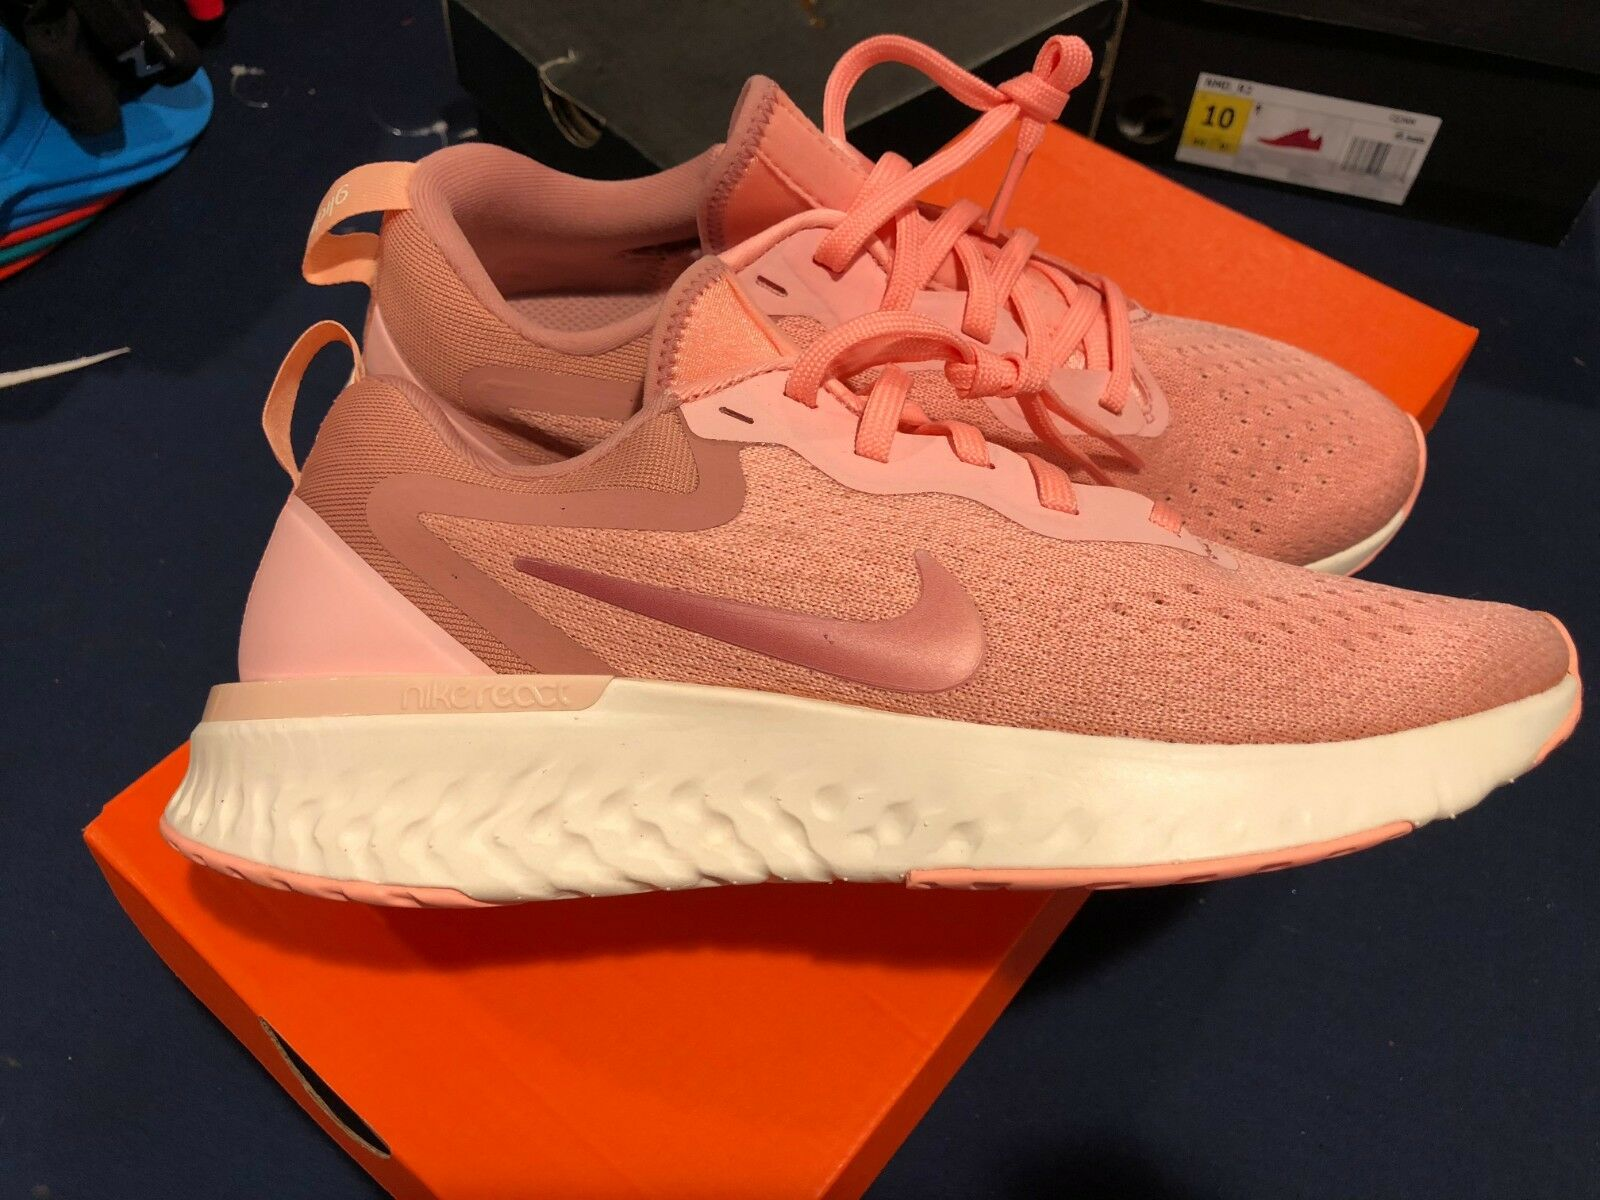 ce78e83dbb320 NEW Nike Odyssey React Women s Running shoes AAO9820 601 Pink Tint Size 8  SAMPLE. Nike Air Max ...